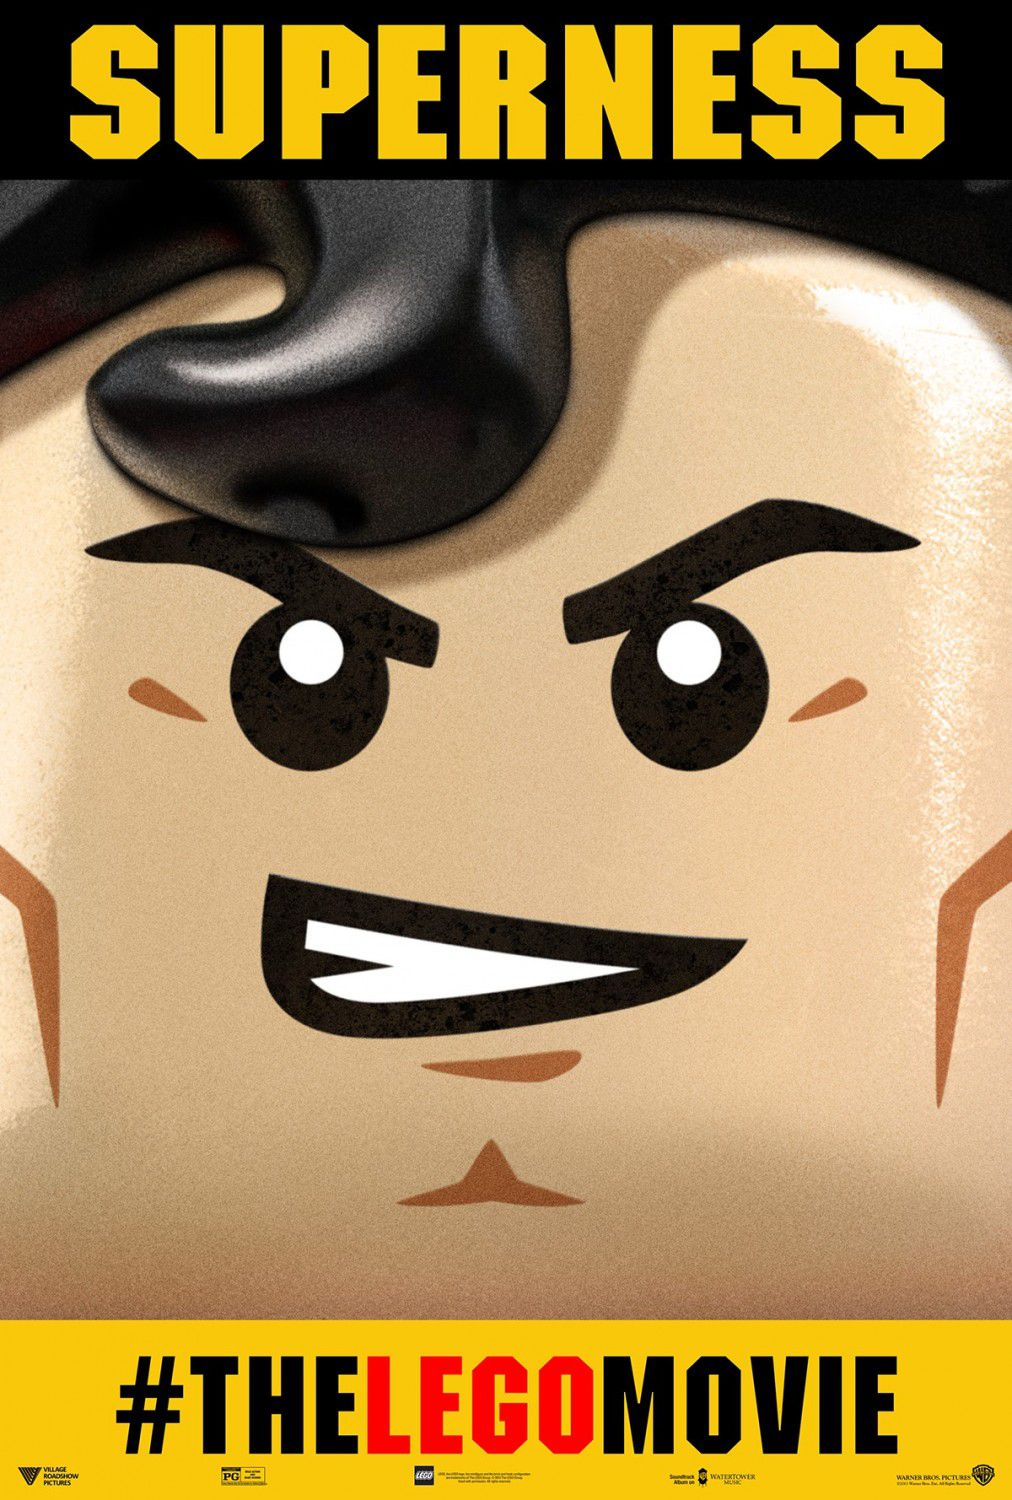 LEGO movie - Superman - Superness